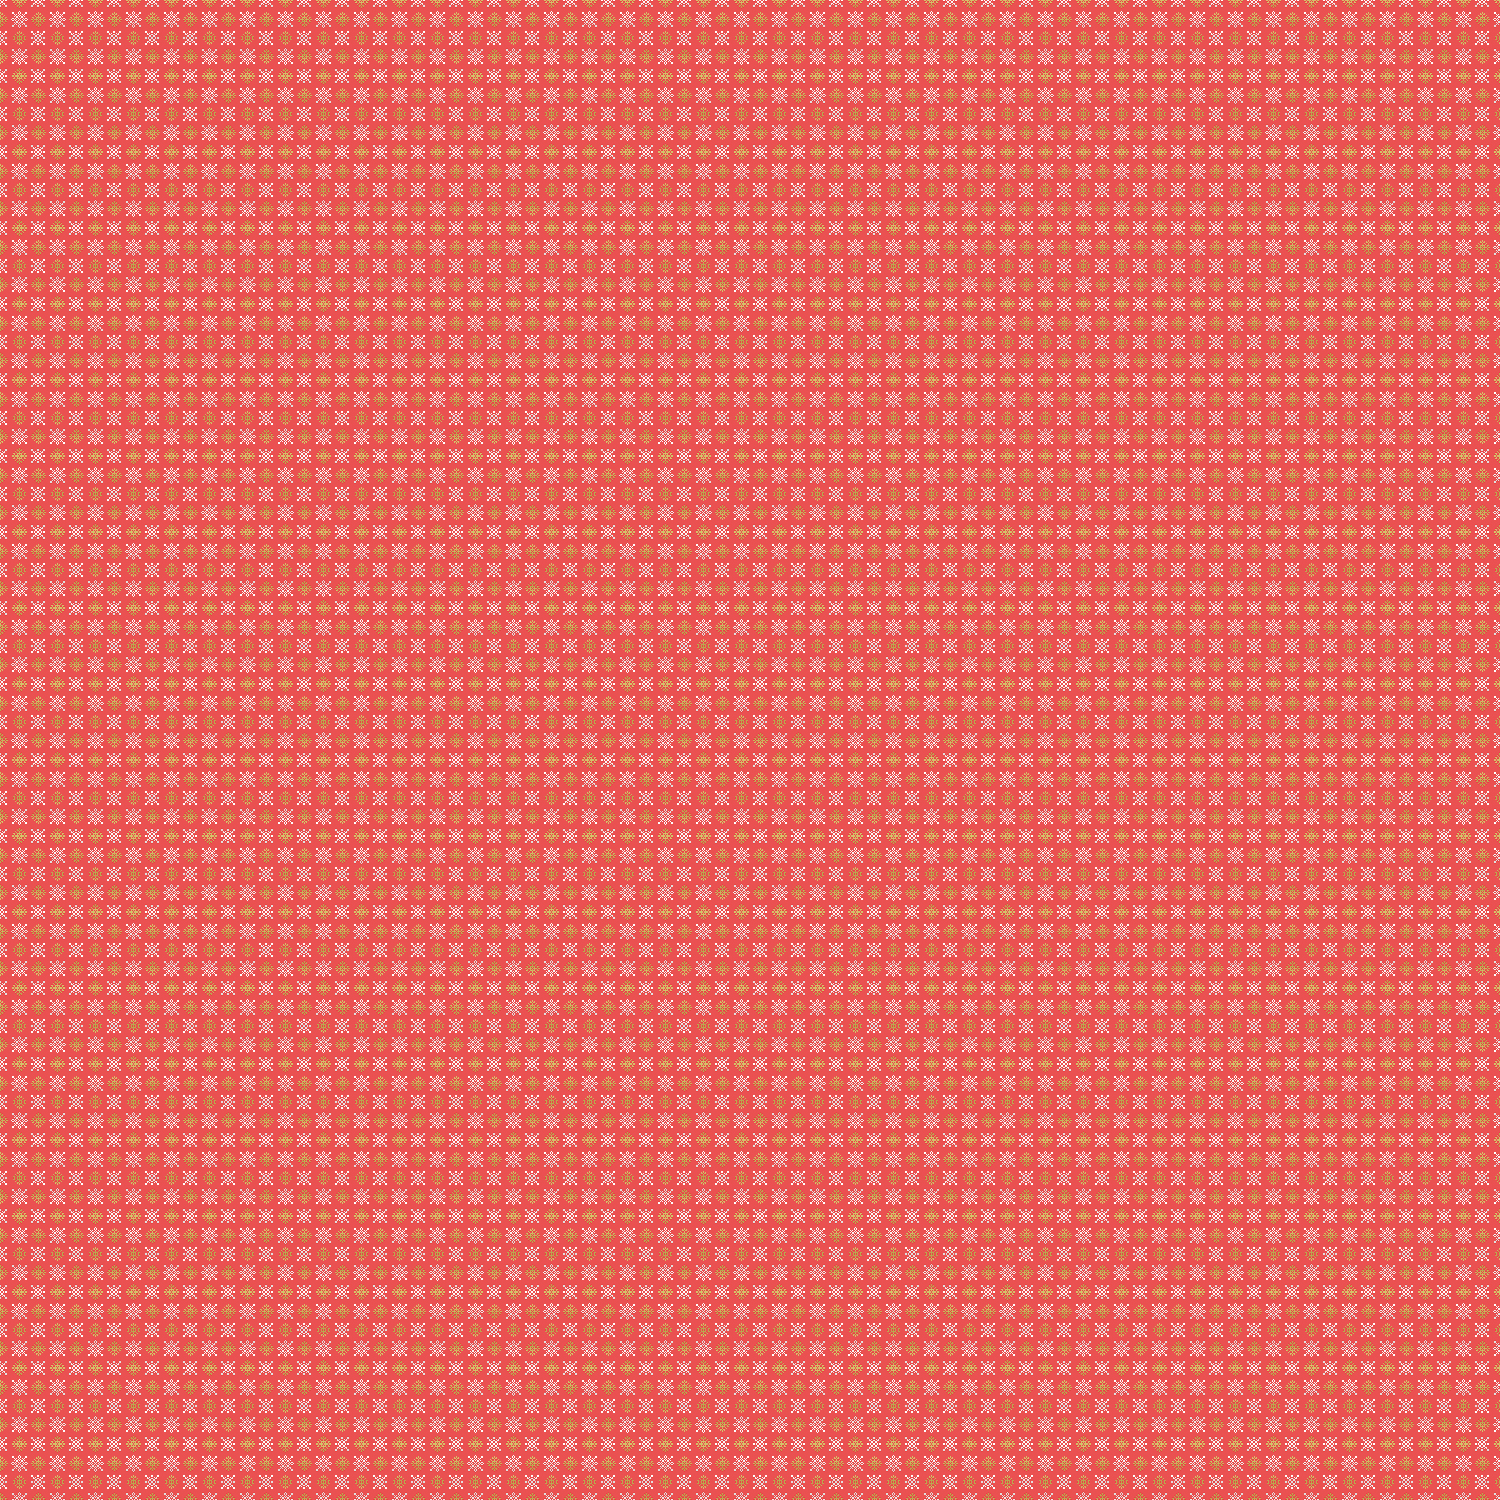 Christmas Backgrounds Wallpapers Photoshop Patterns 1500x1500